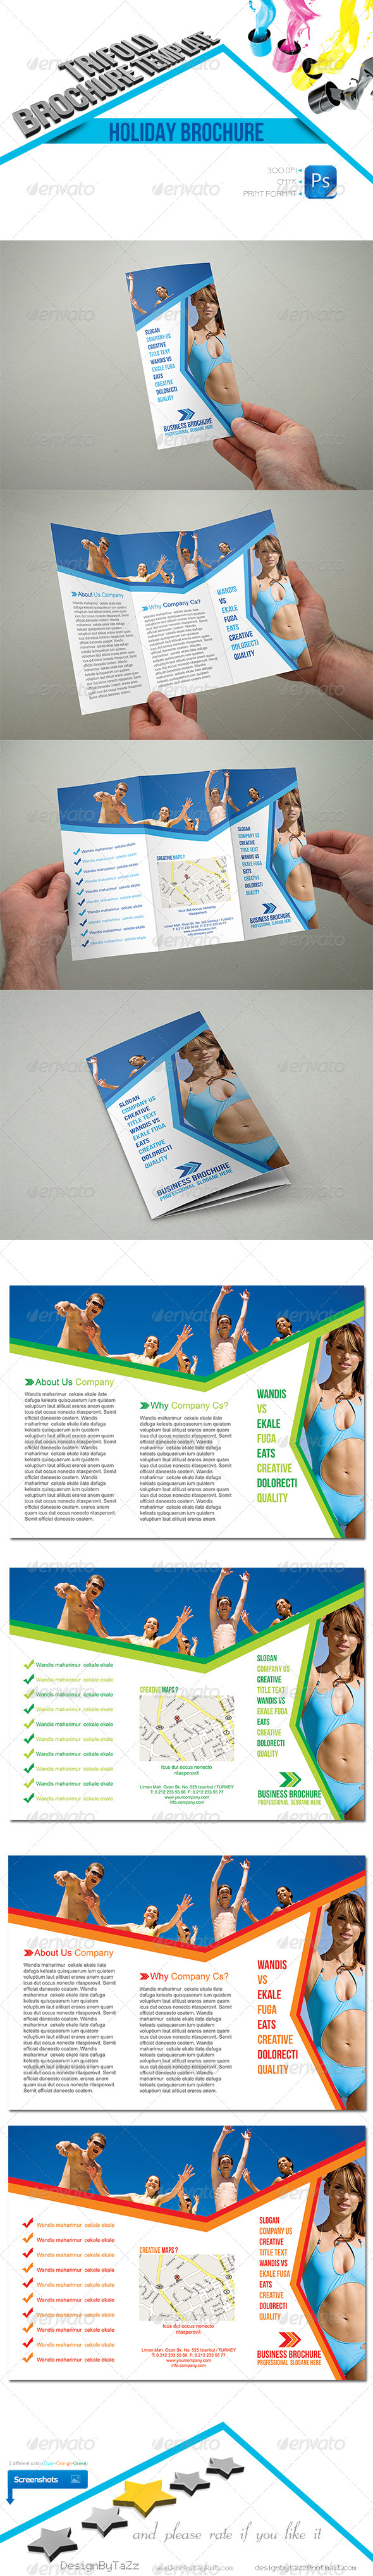 GraphicRiver Holiday Trifold Template 4467960